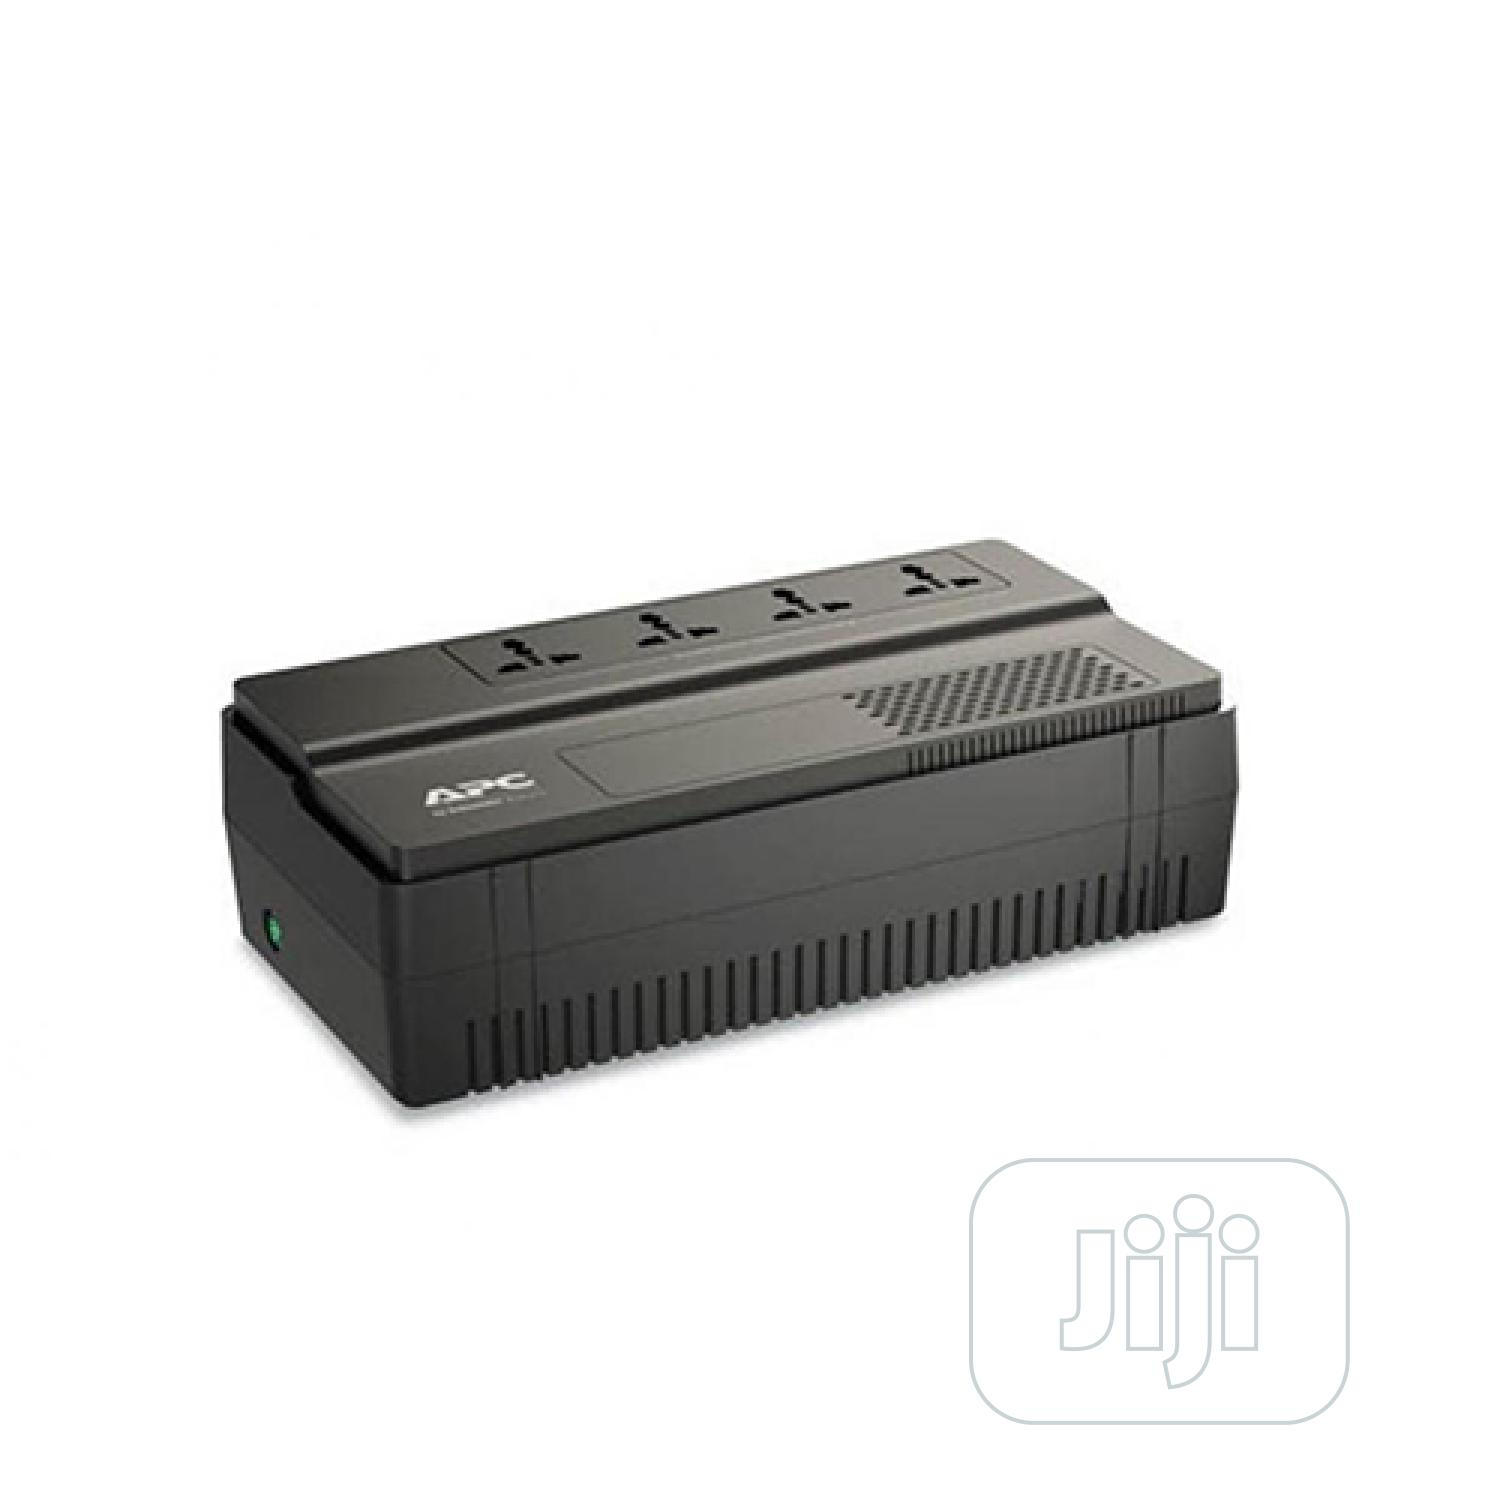 APC UPS 650va Avr Universal Outlet 230V | Computer Hardware for sale in Ikeja, Lagos State, Nigeria